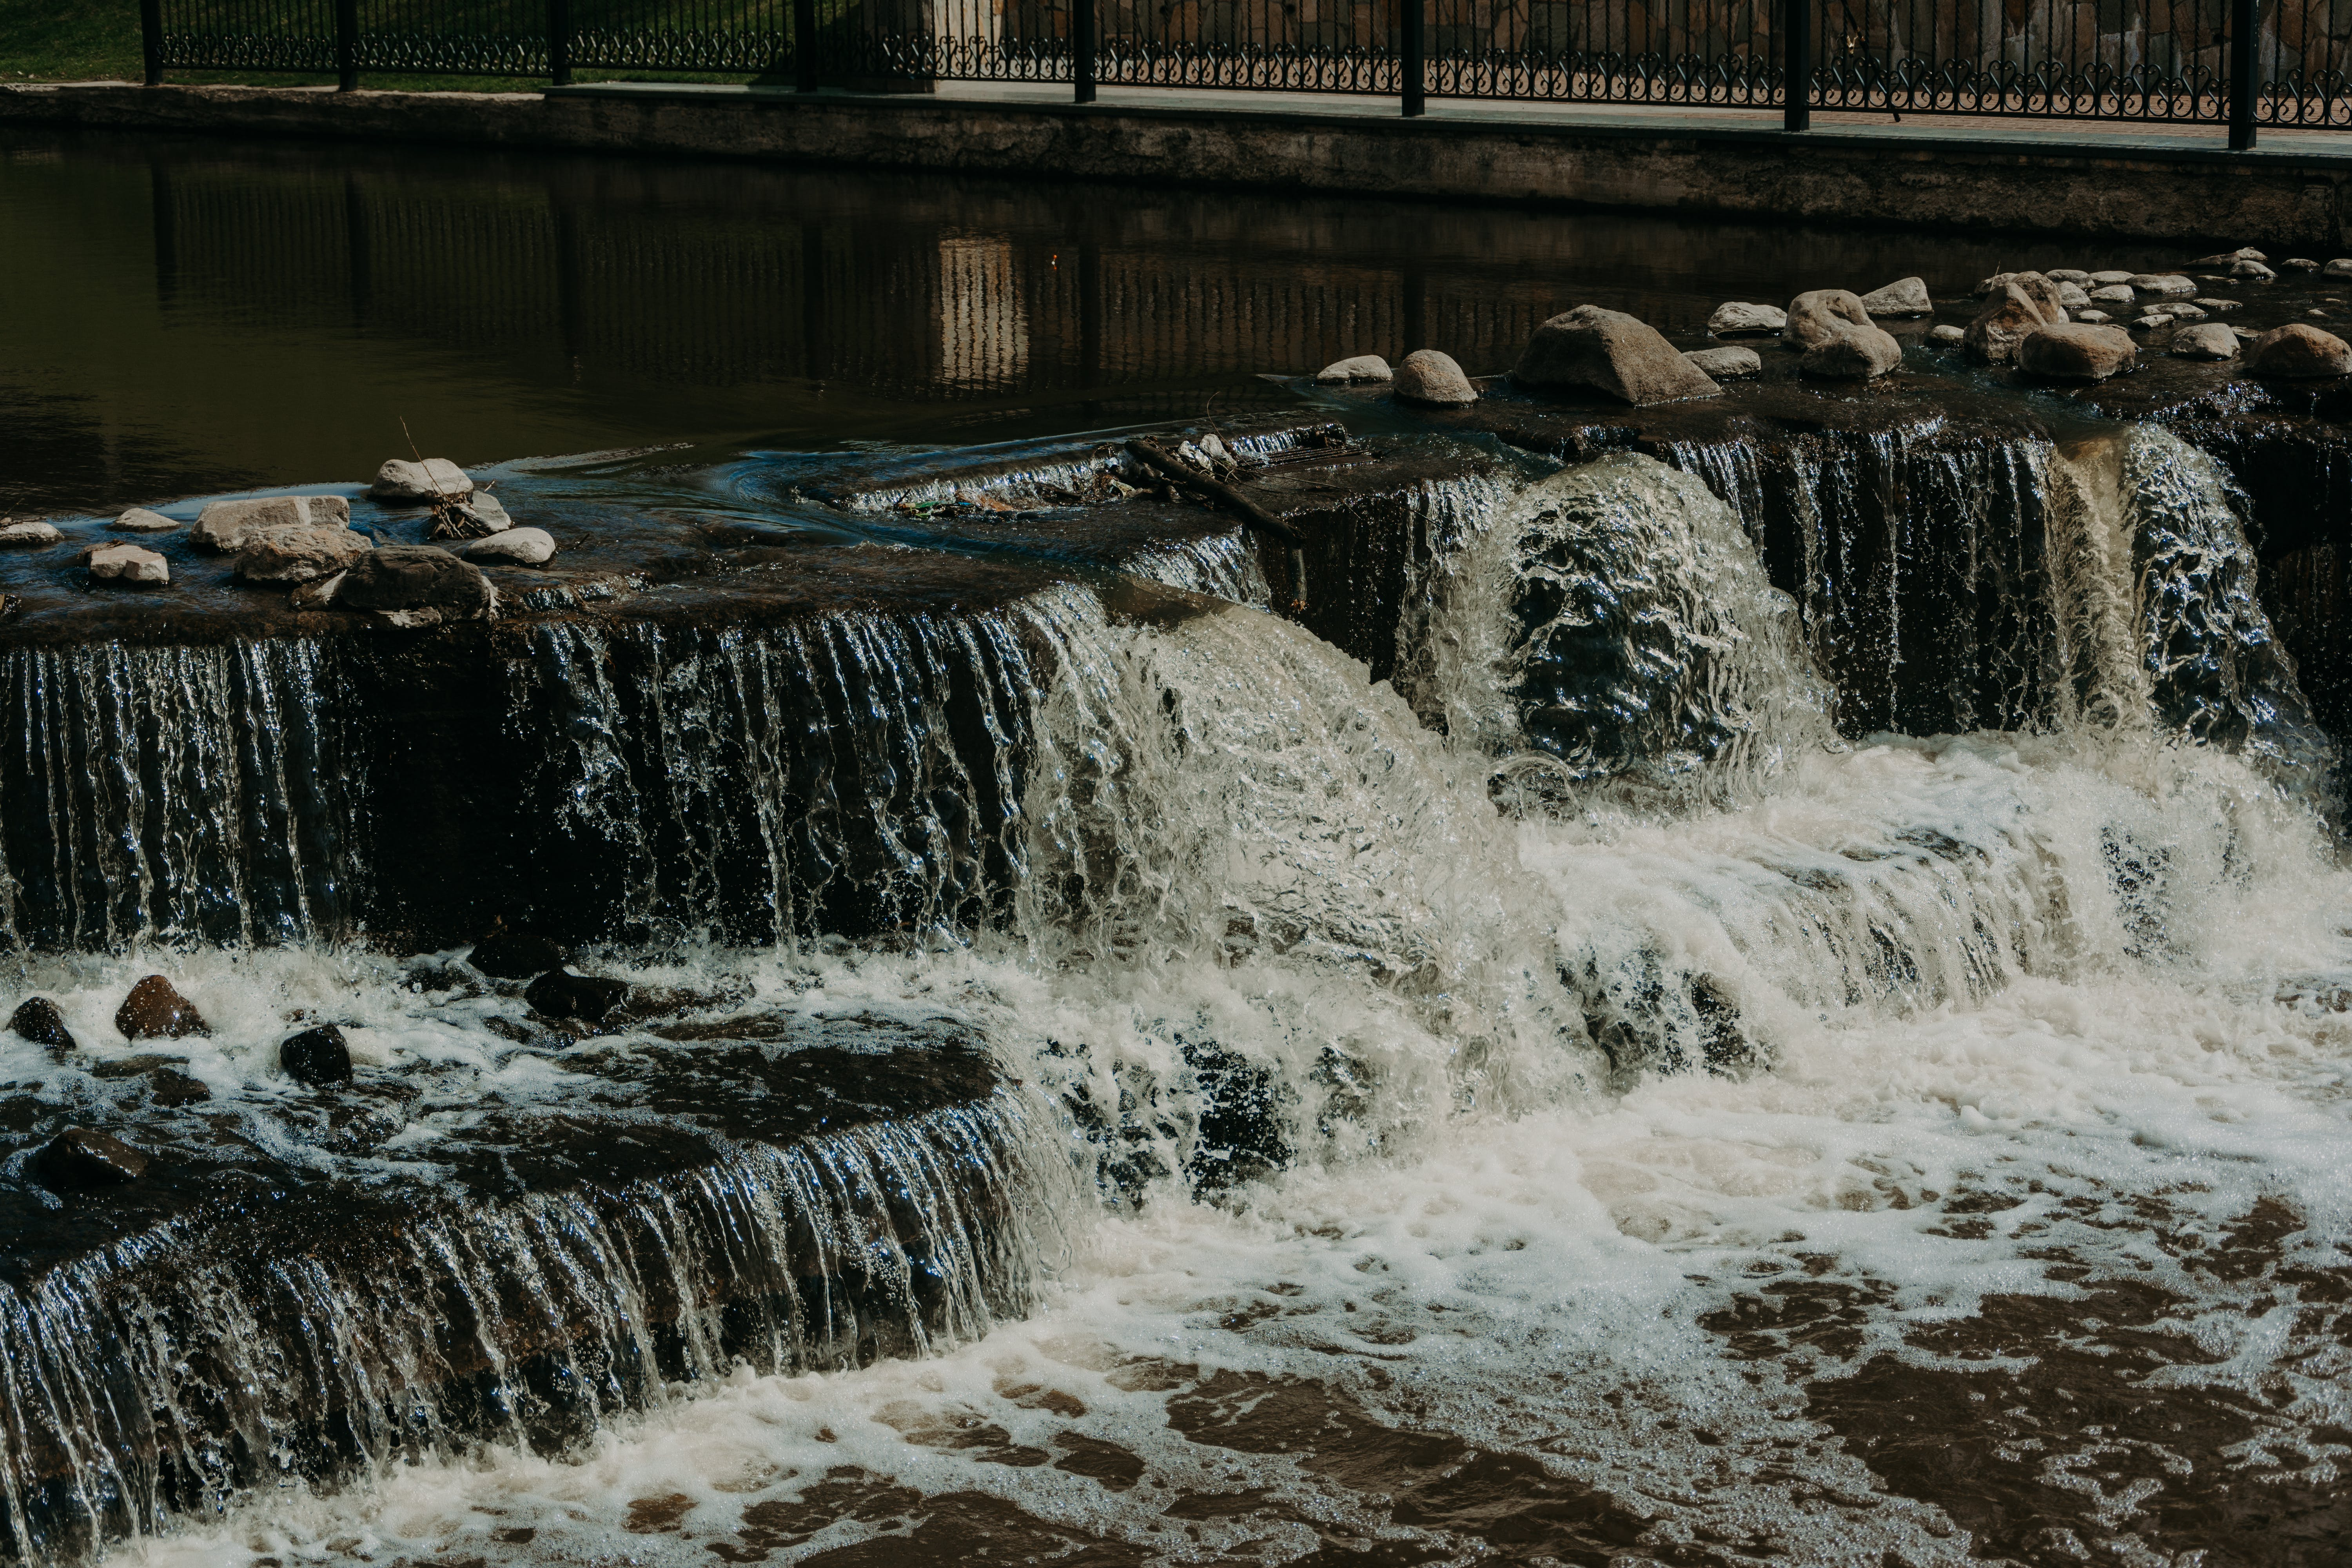 Time-lapse Photography of River